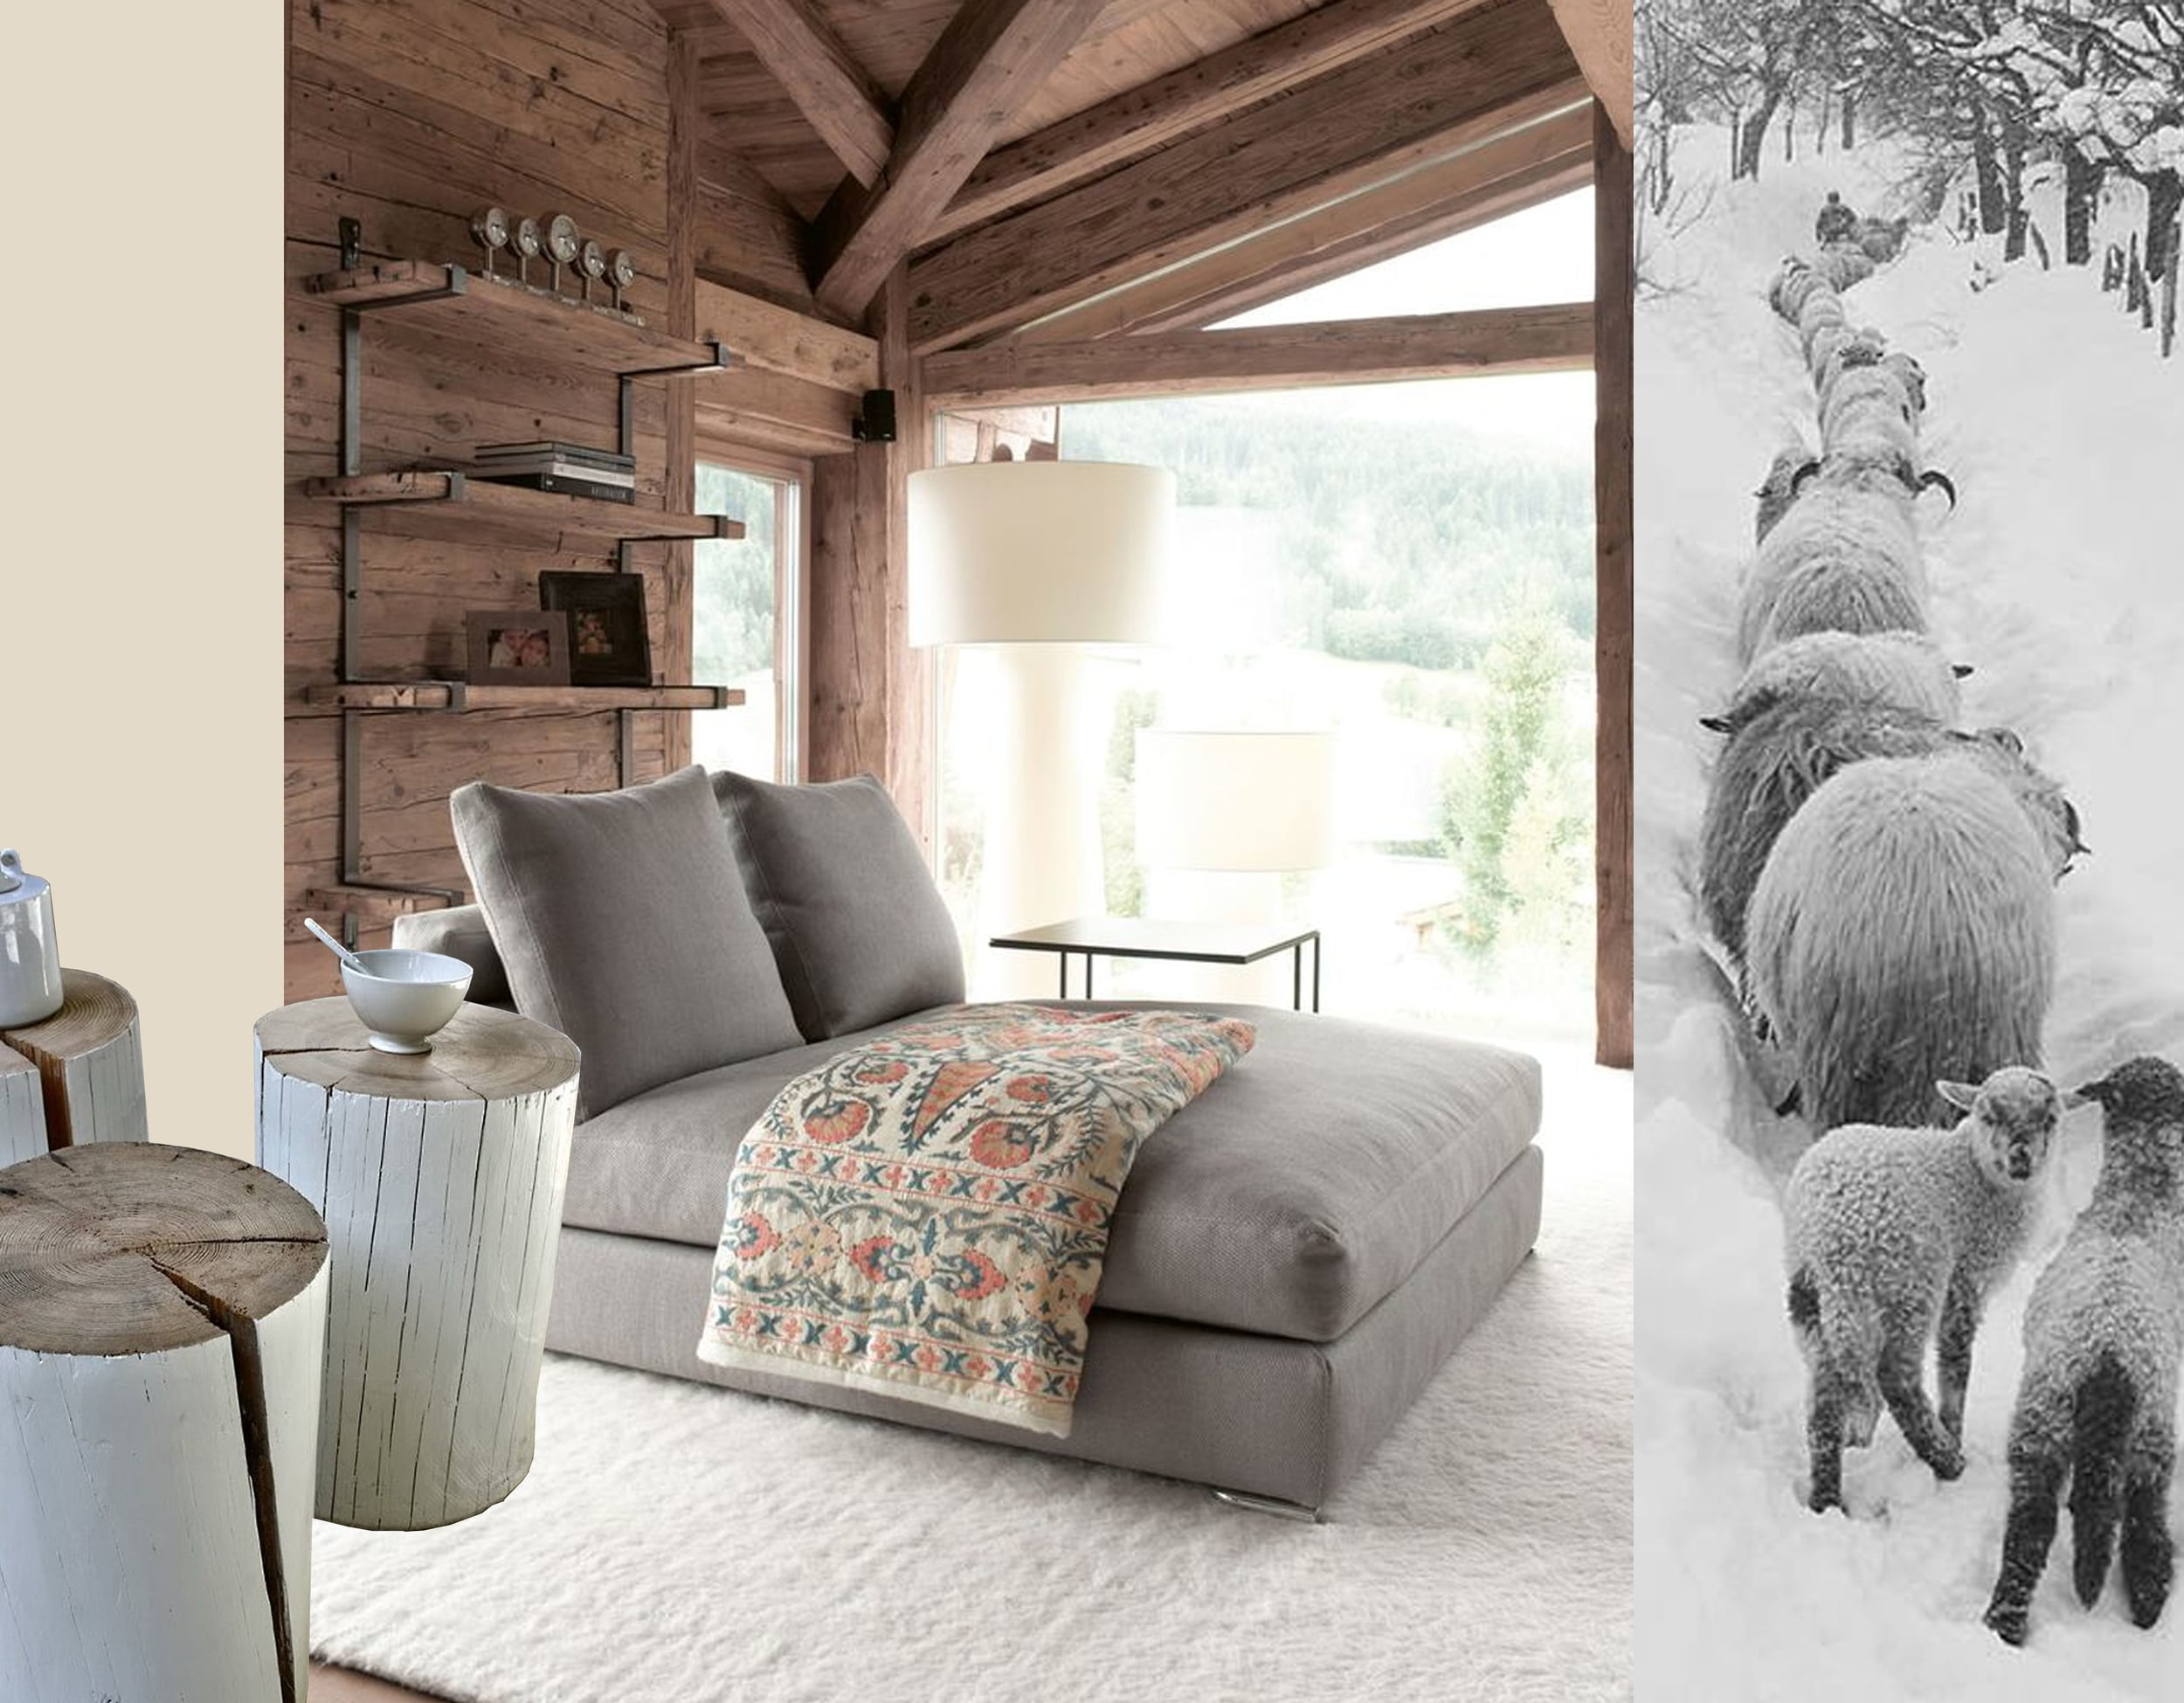 image with daybed via  Busyboo  - trunks via  Pinterest  - sheeps via  Pinterest